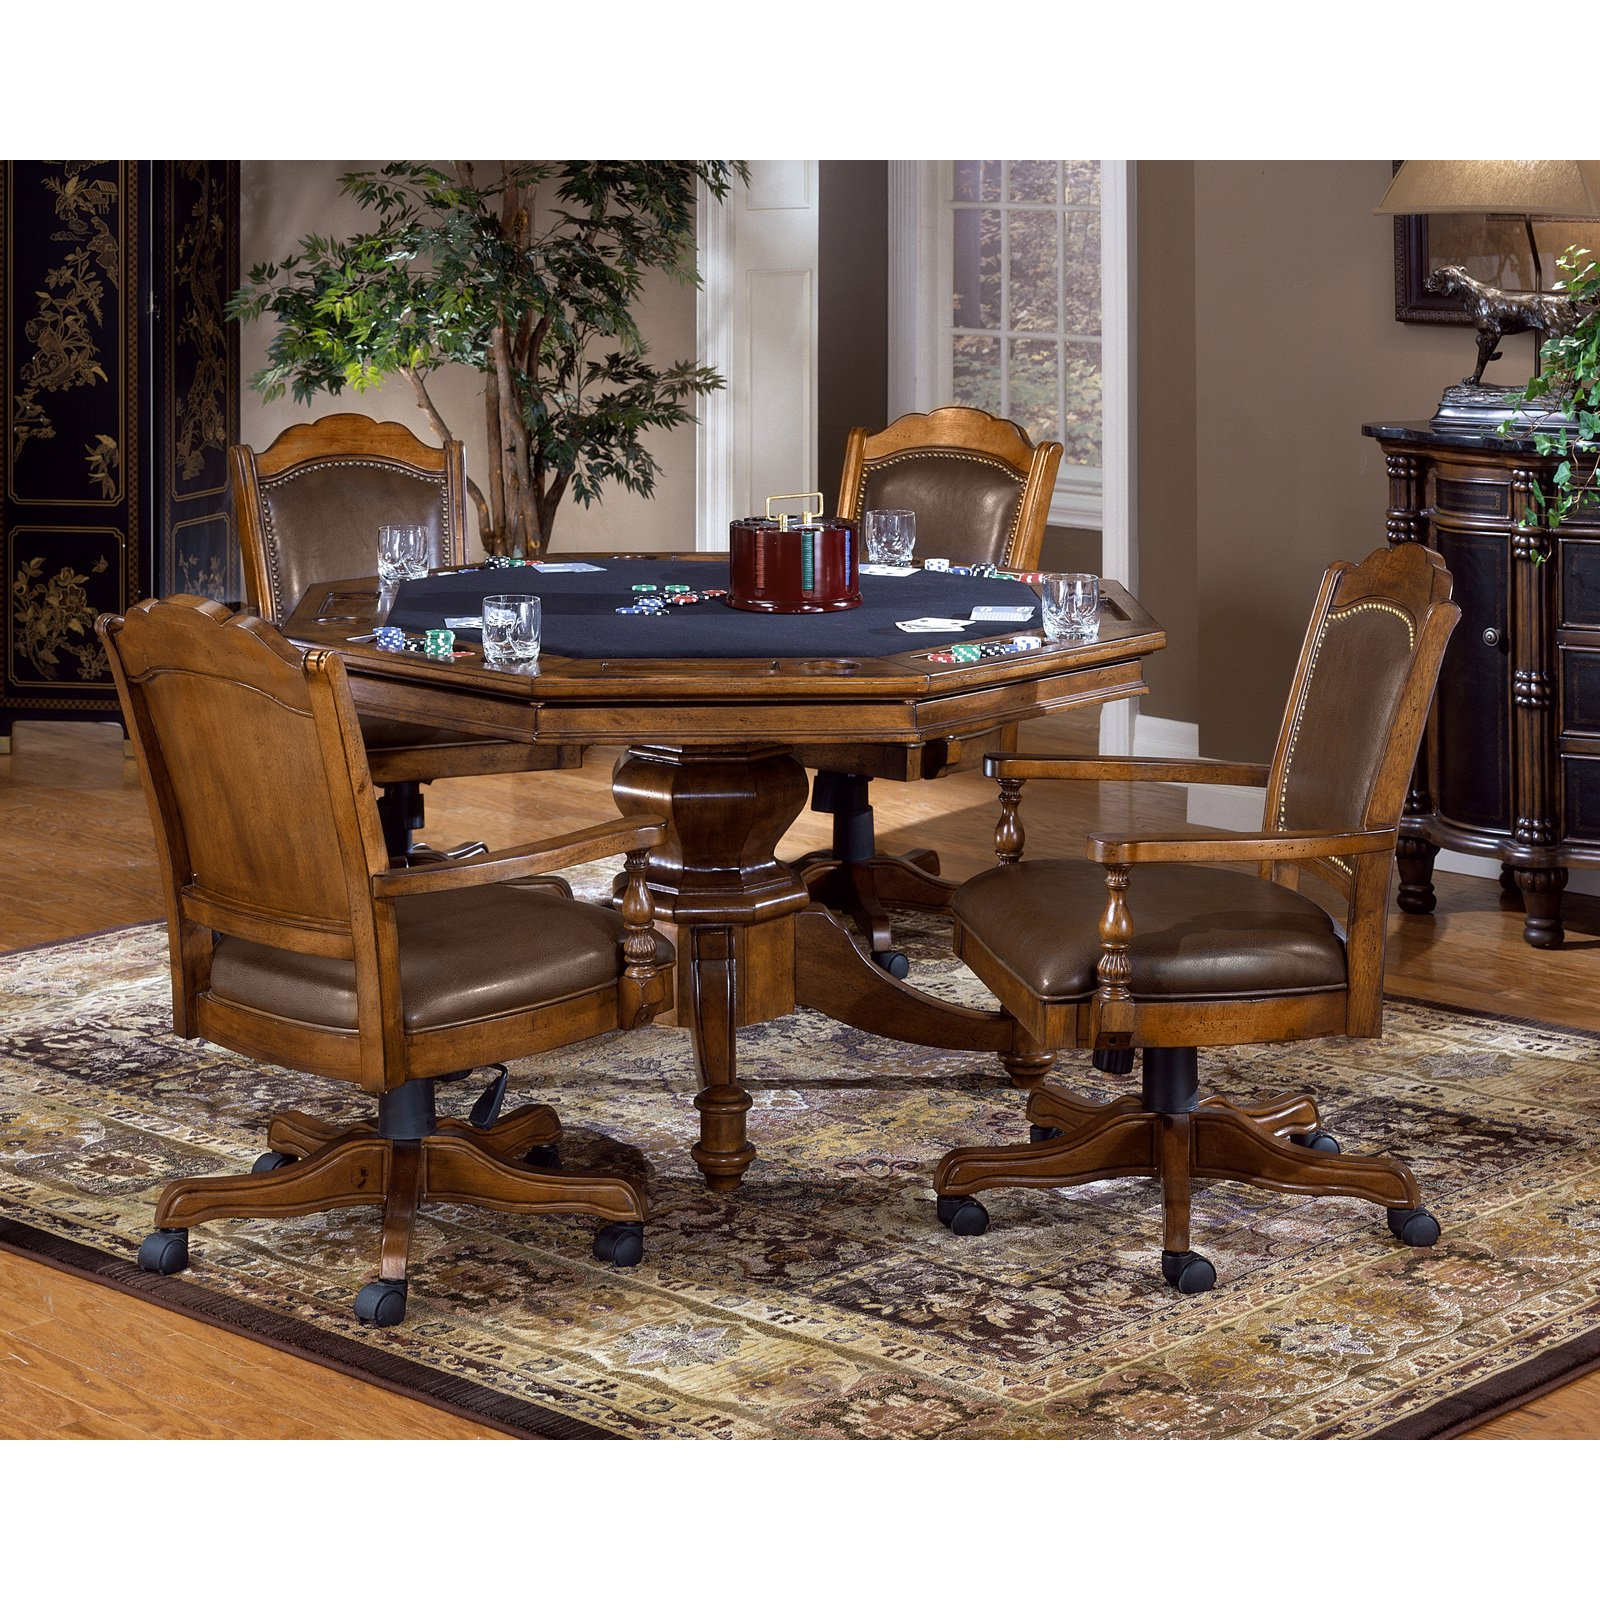 Hillsdale Nassau 5 Piece Game Table Set by Hillsdale